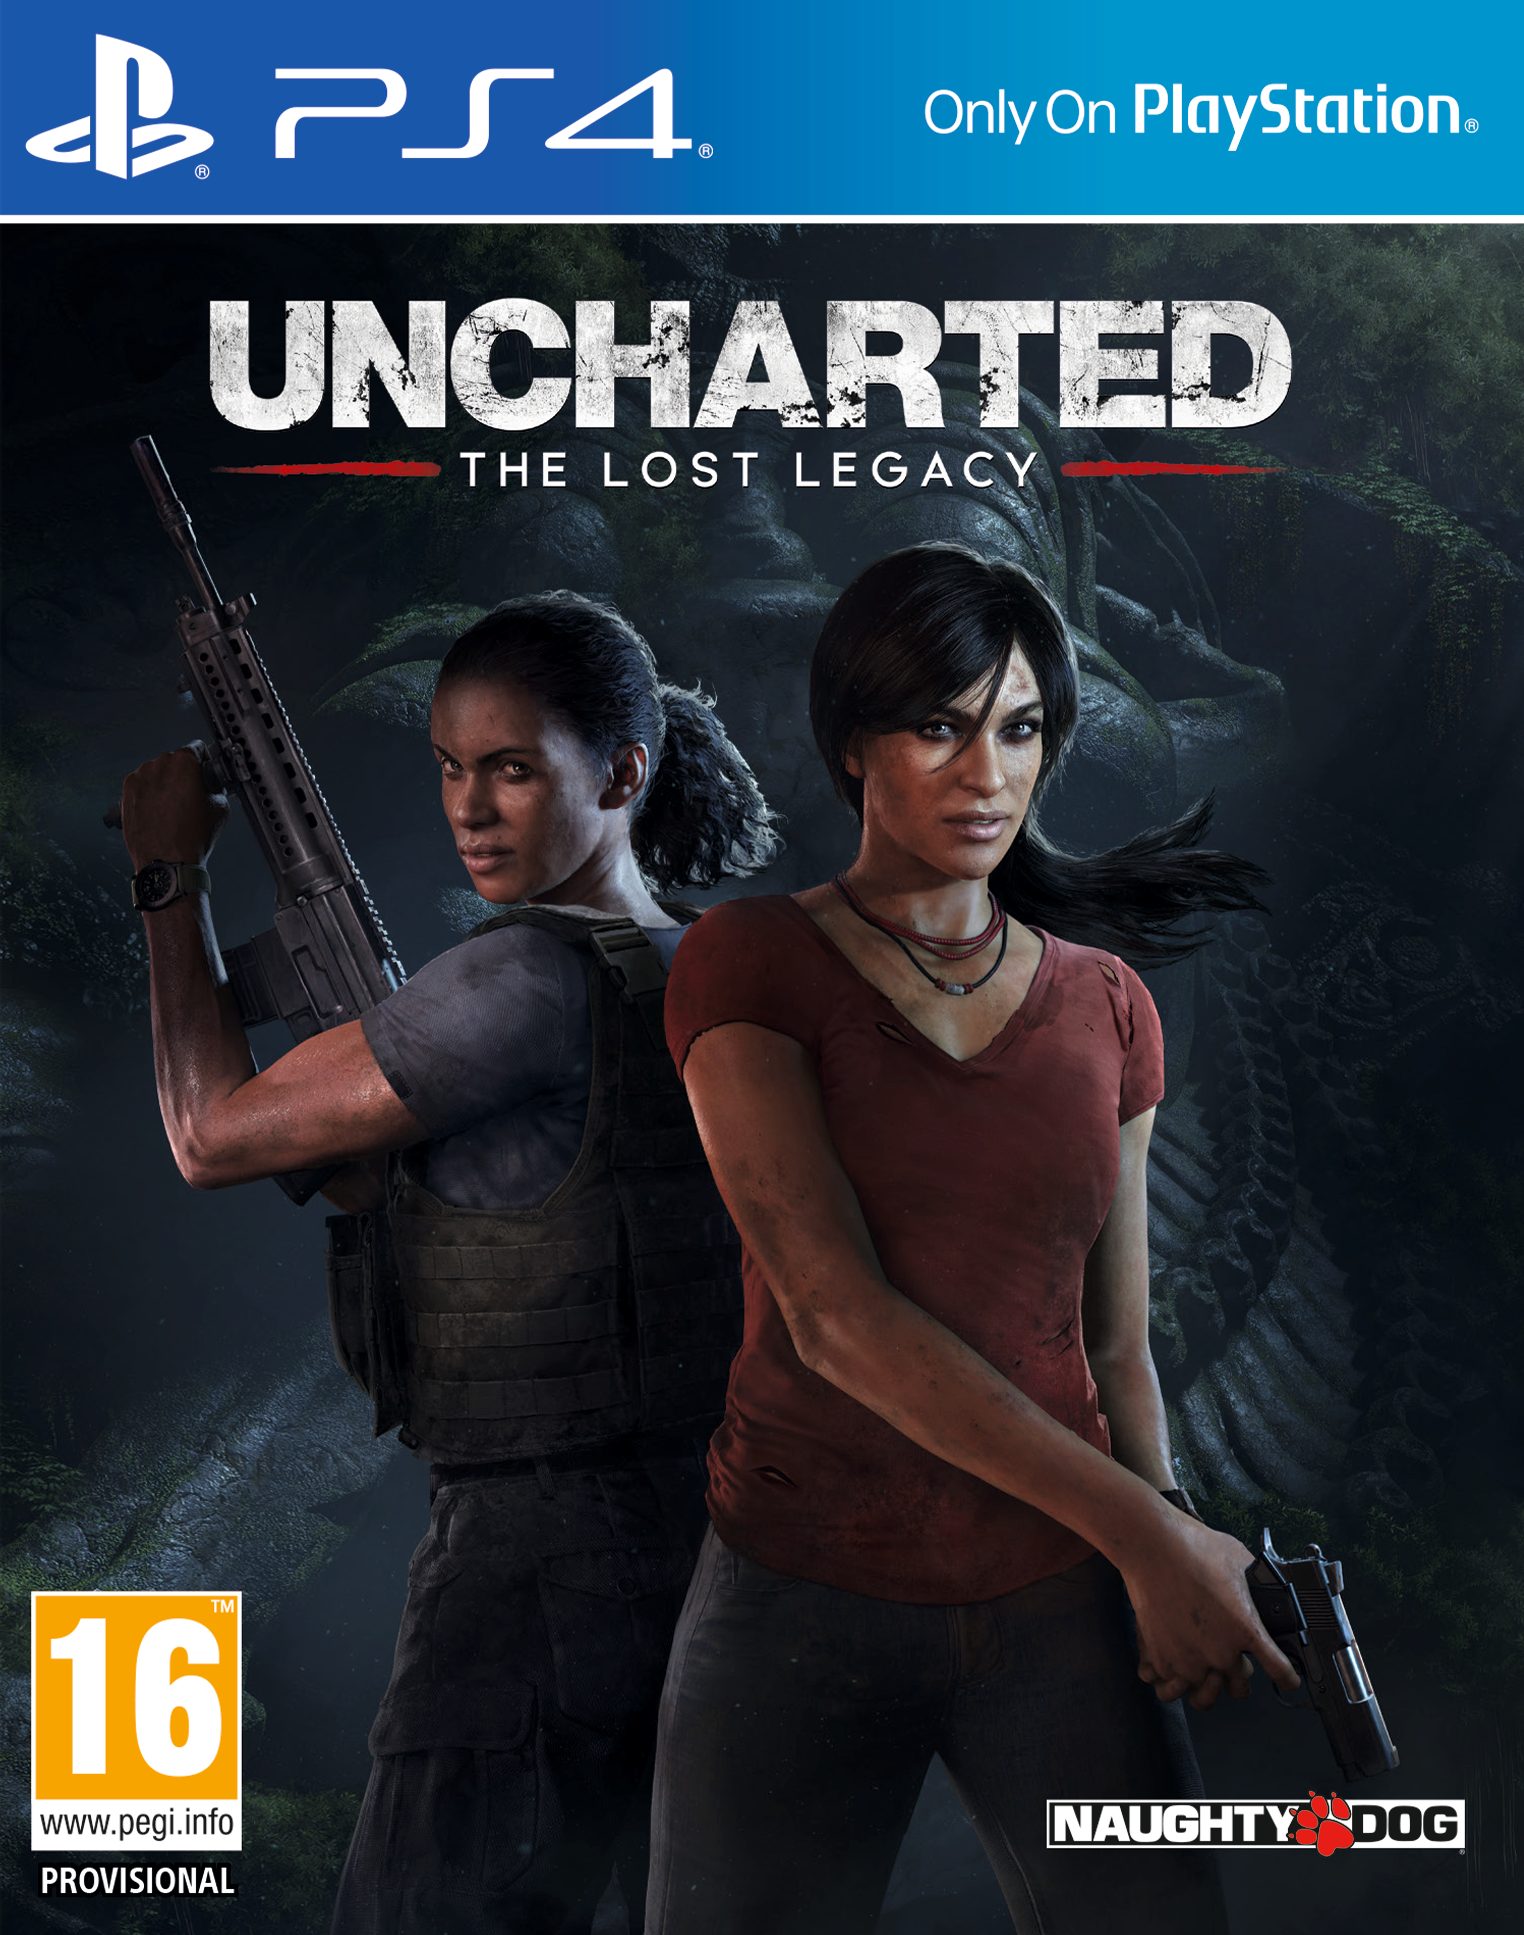 Uncharted The Lost Legacy Uncharted Wiki Fandom